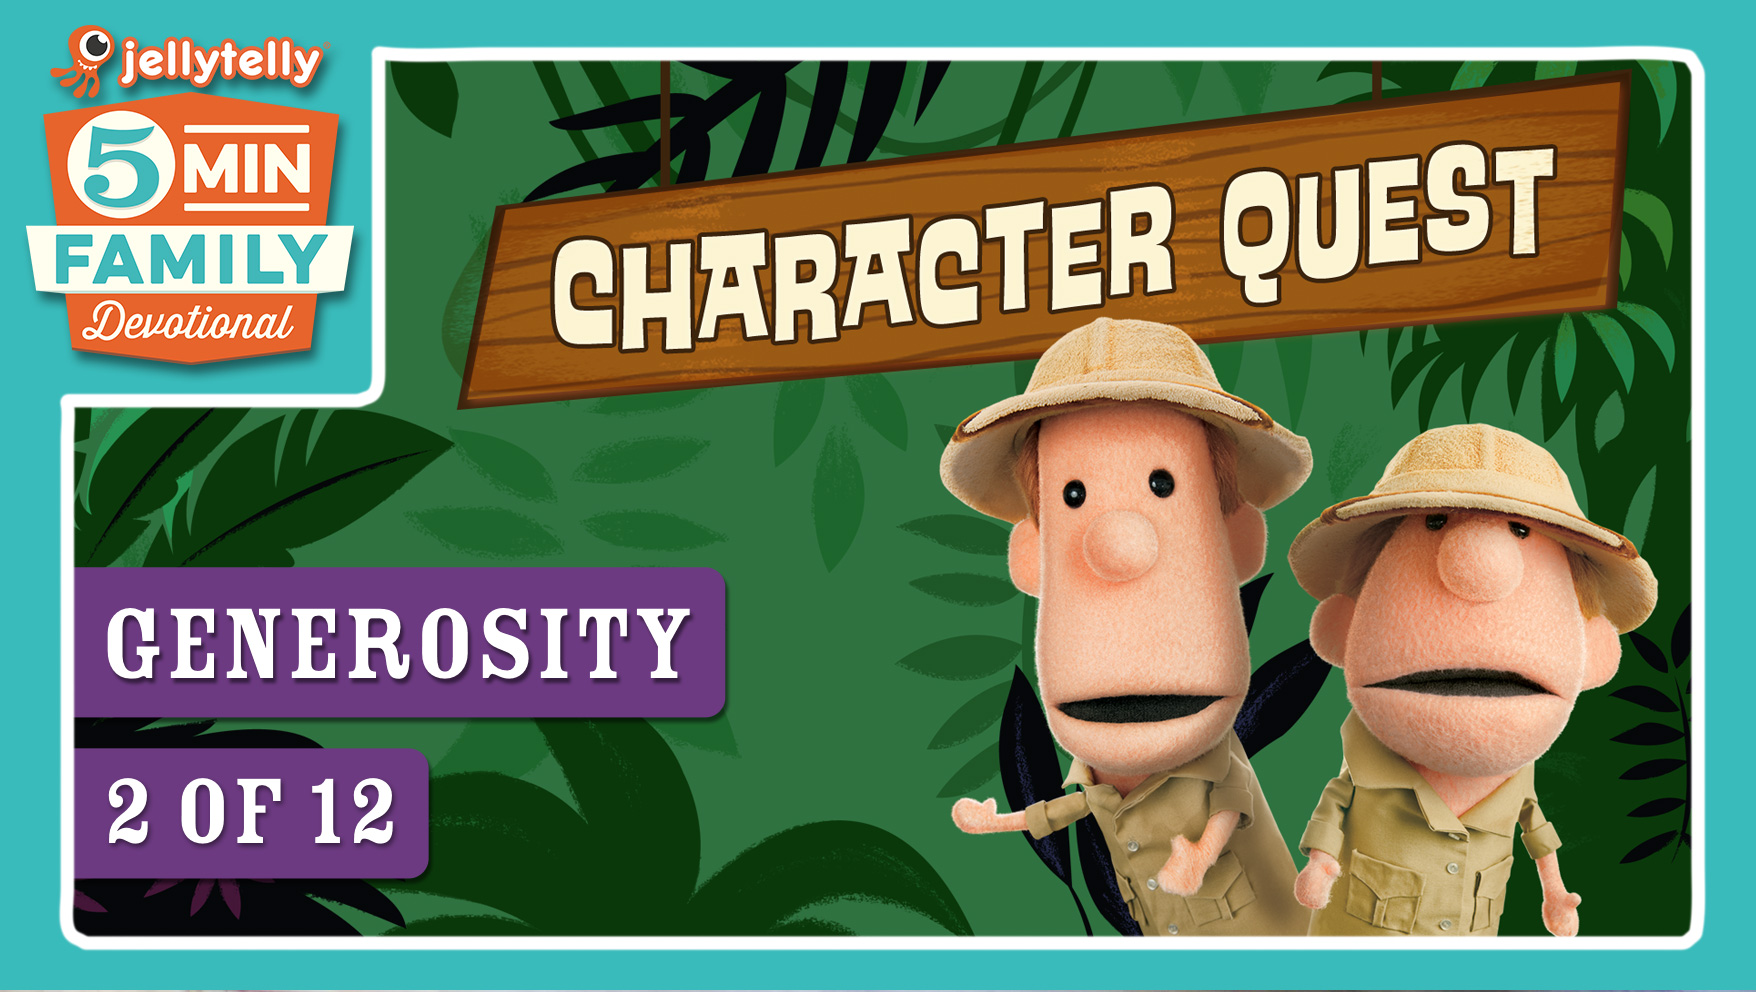 Generosity - Character Quest 5 Minute Family Devotional